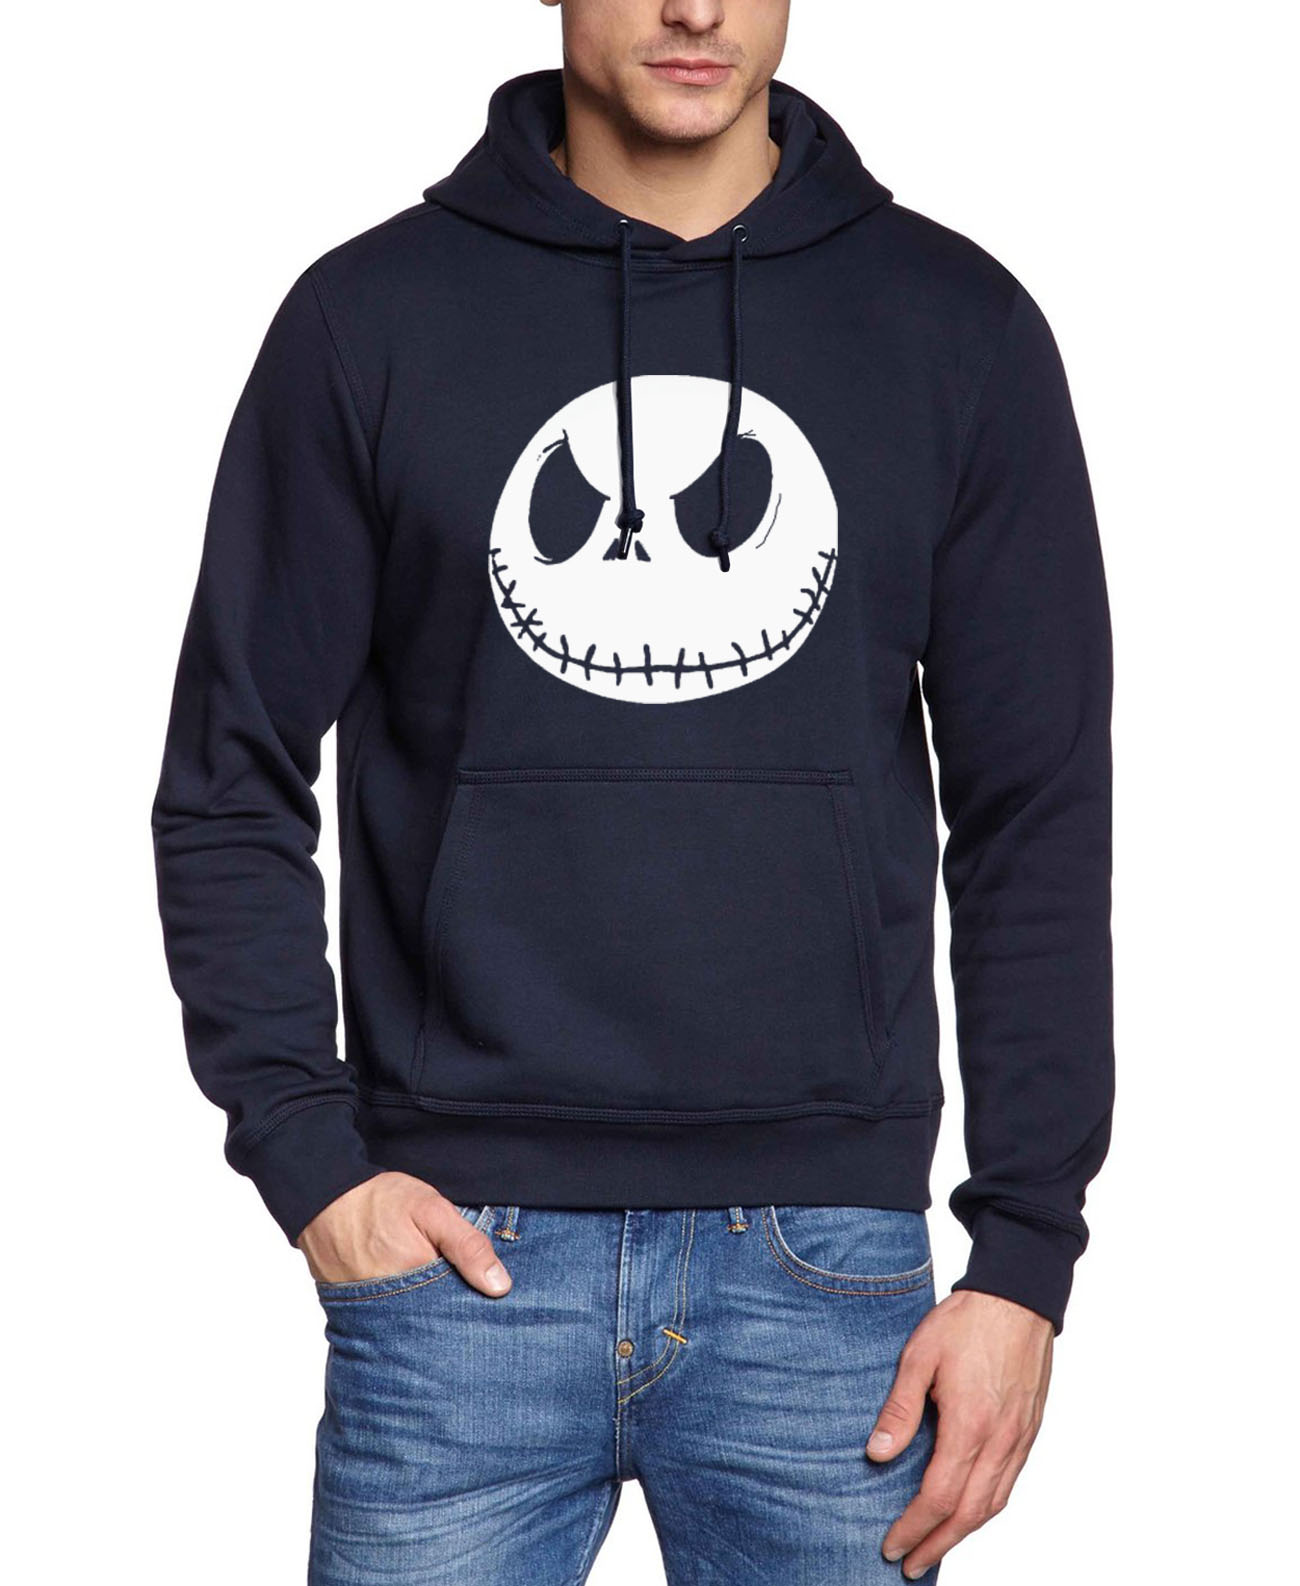 2019 funny Jack Skellington hoodies men autumn winter fleece hip-hop sweatshirt male harajuku brand tracksuit casual kpop hooded